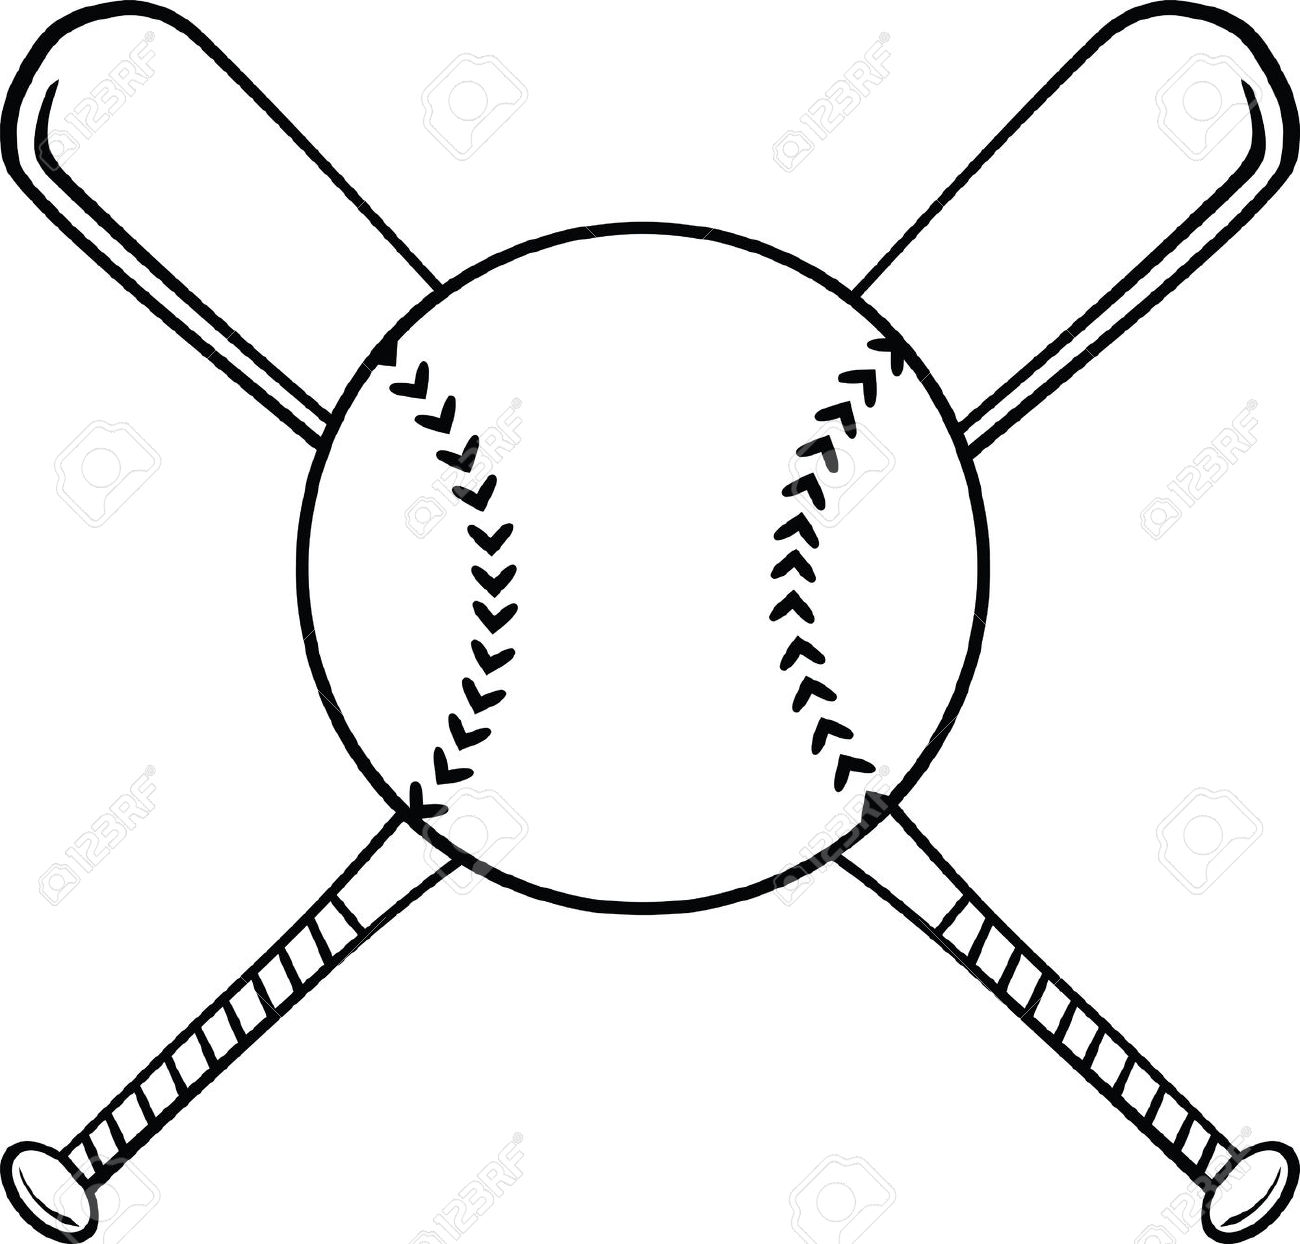 Softball ball and bat clipart.